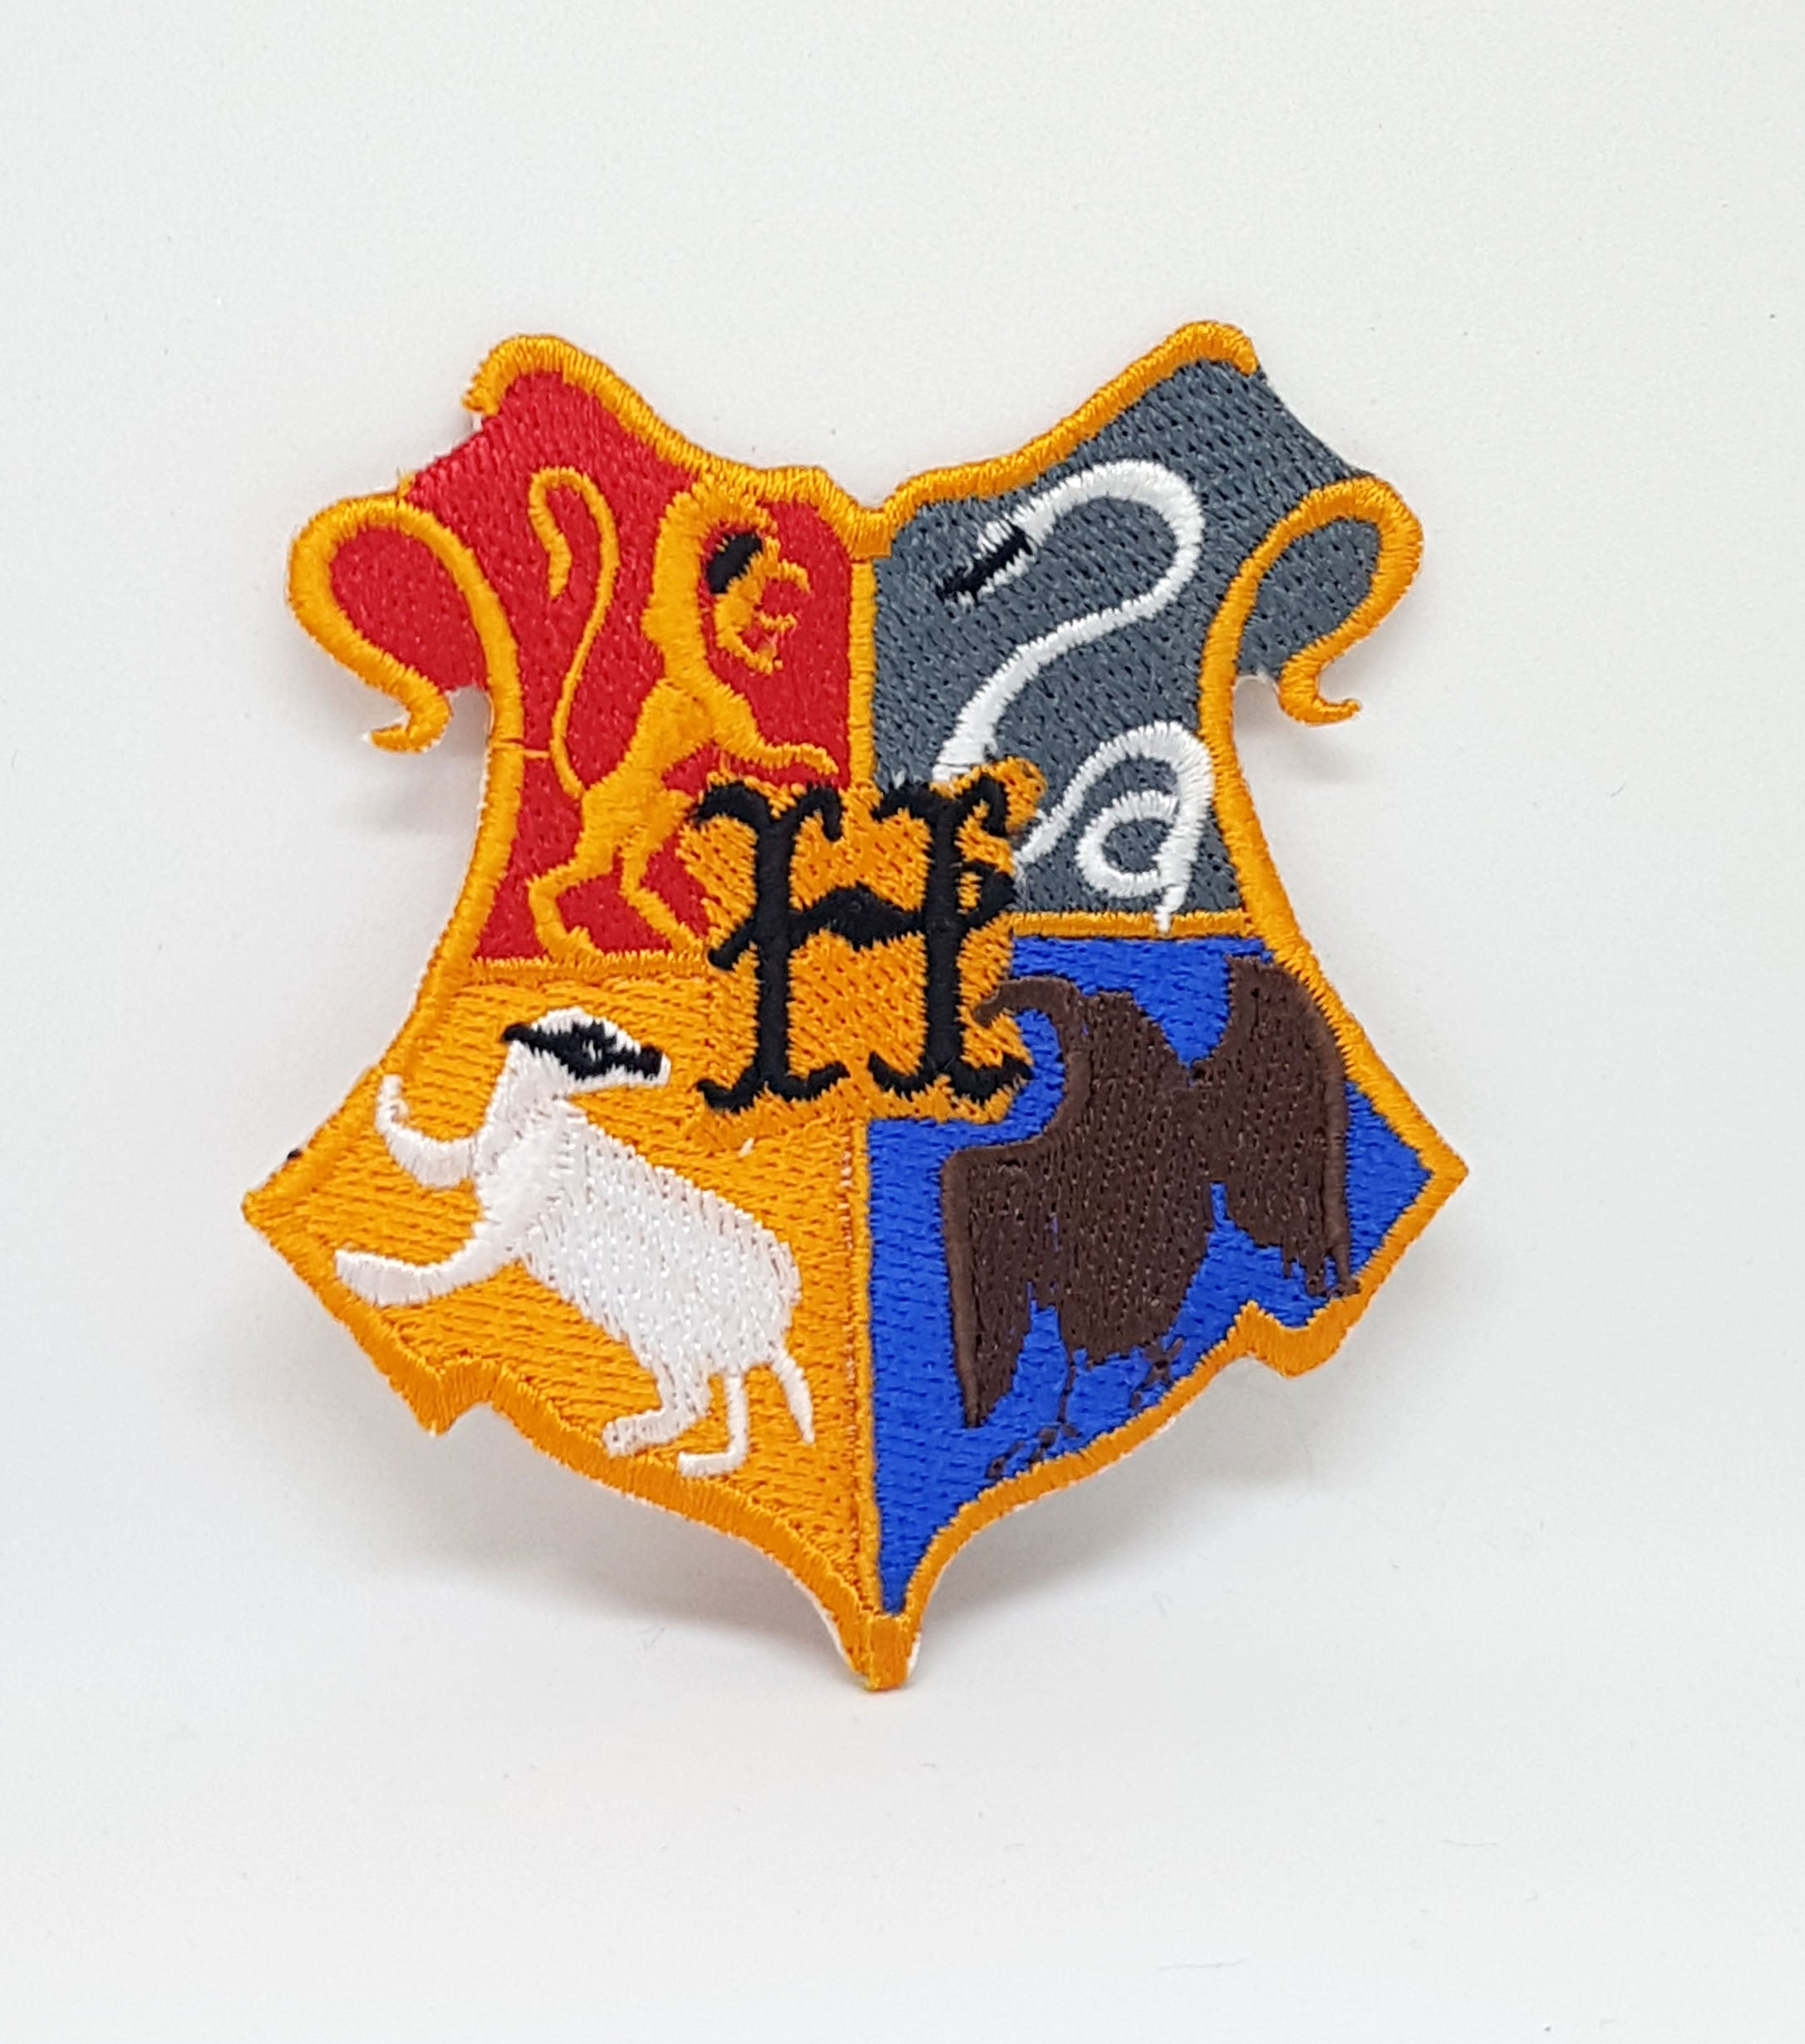 Harry Potter Hogwarts Orange Iron Sew on Embroidered Patch - Patches-Badges